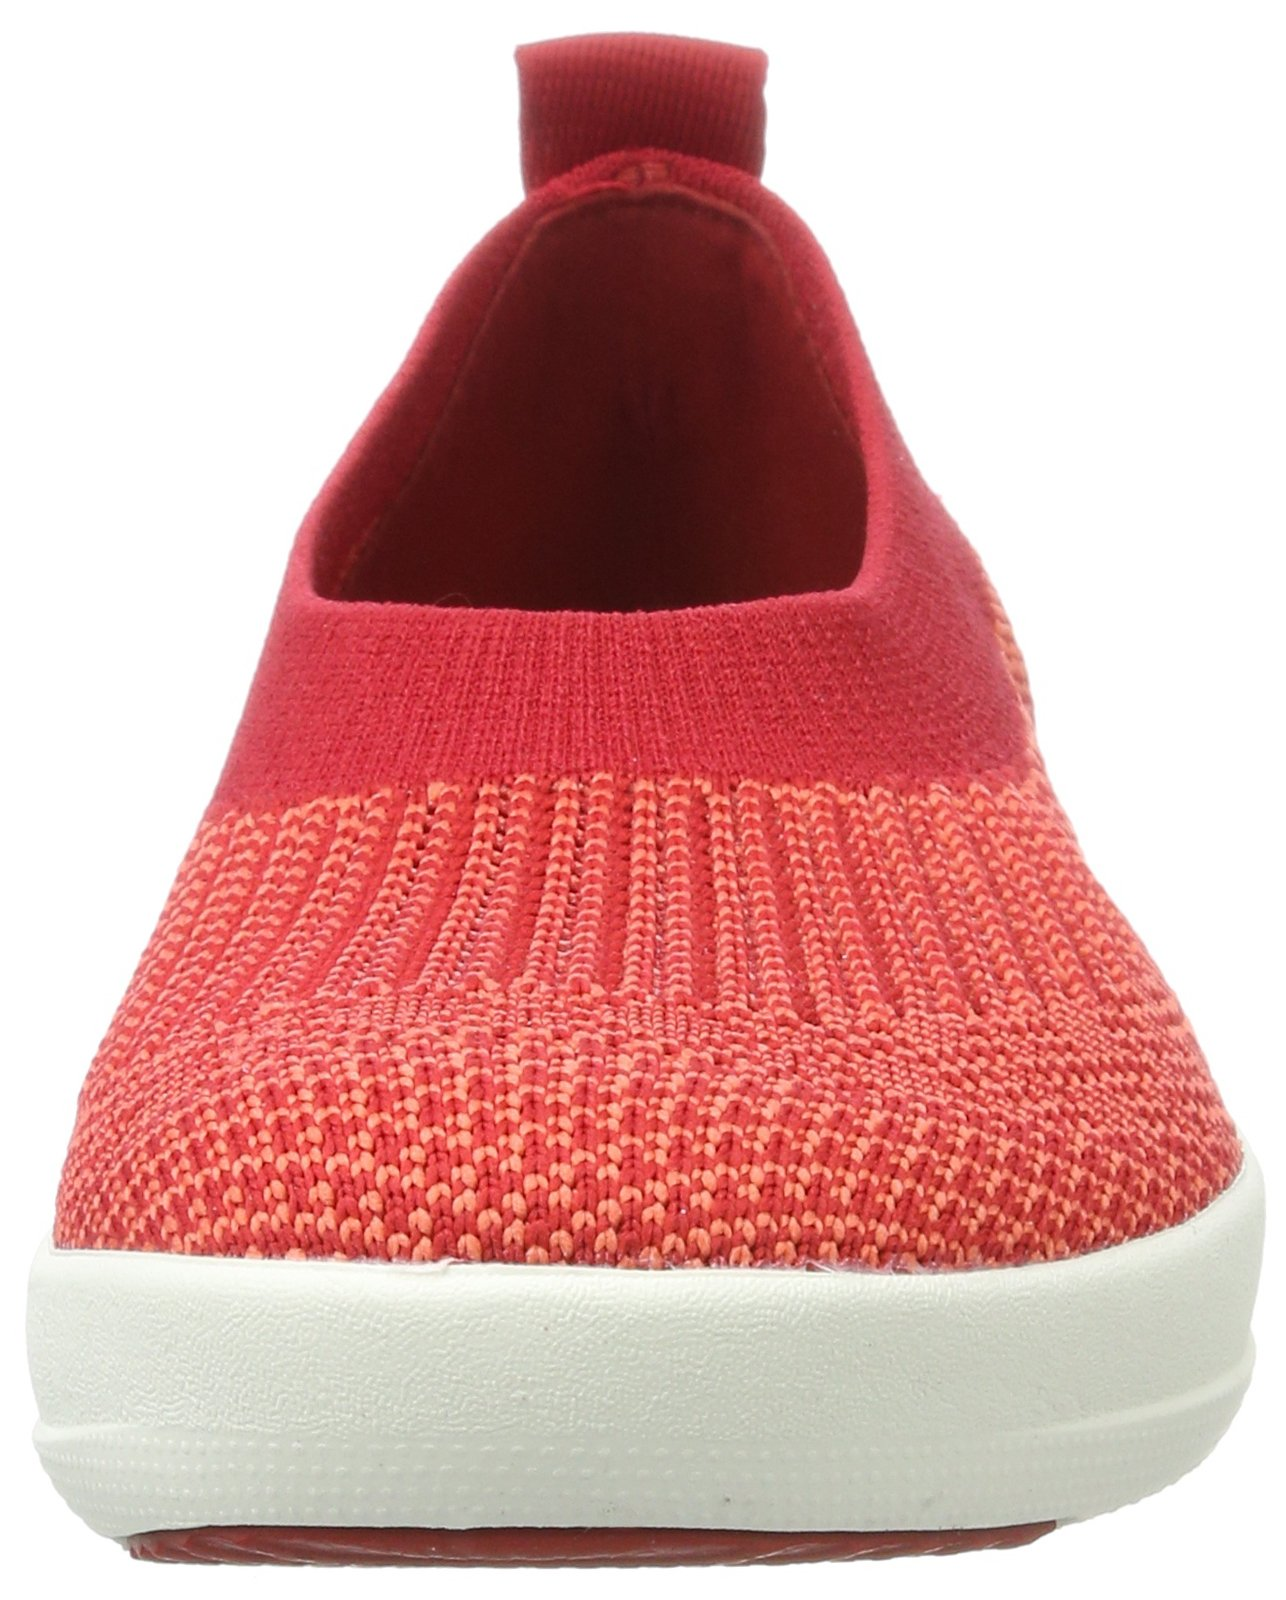 Fitflop H95 Women's Uberknit™ Slip-On Ballerinas, Classic Red - 8.5 by FitFlop (Image #4)